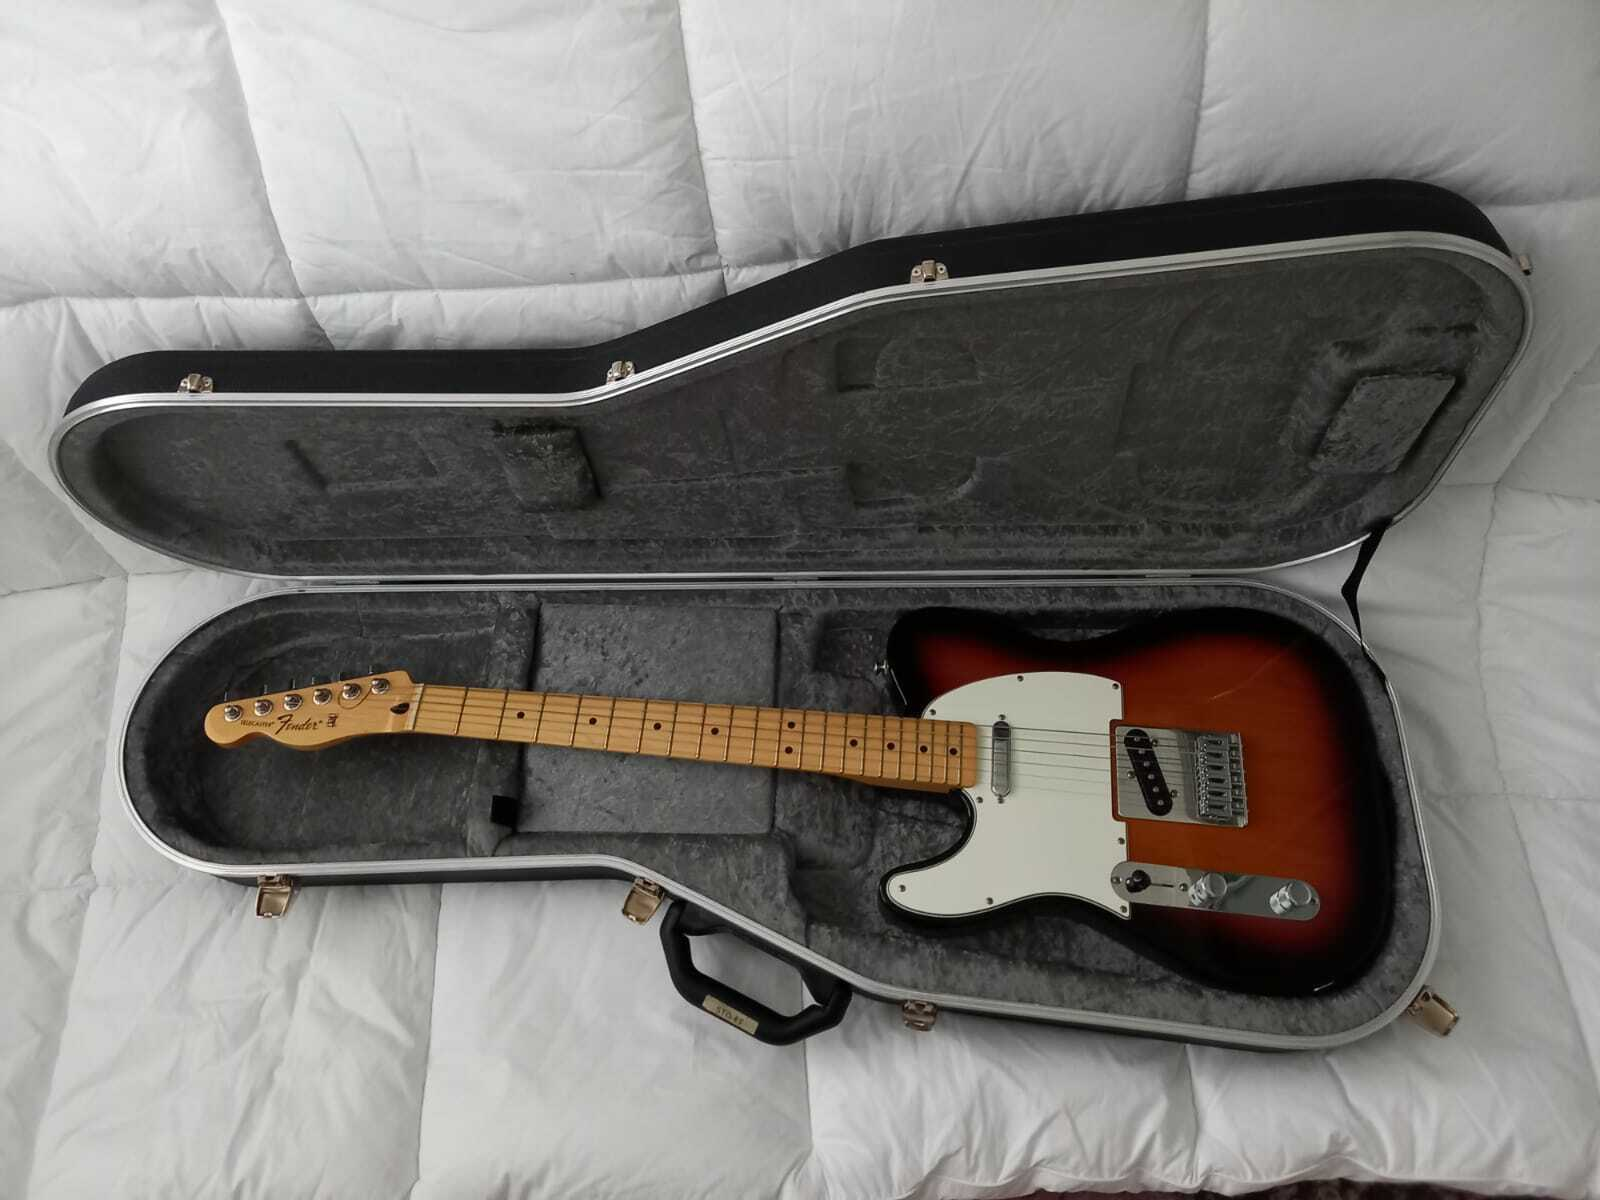 This pre-owned left handed Fender Telecaster guitar is for sale - Fender Mexican Telecaster Left Handed Guitar